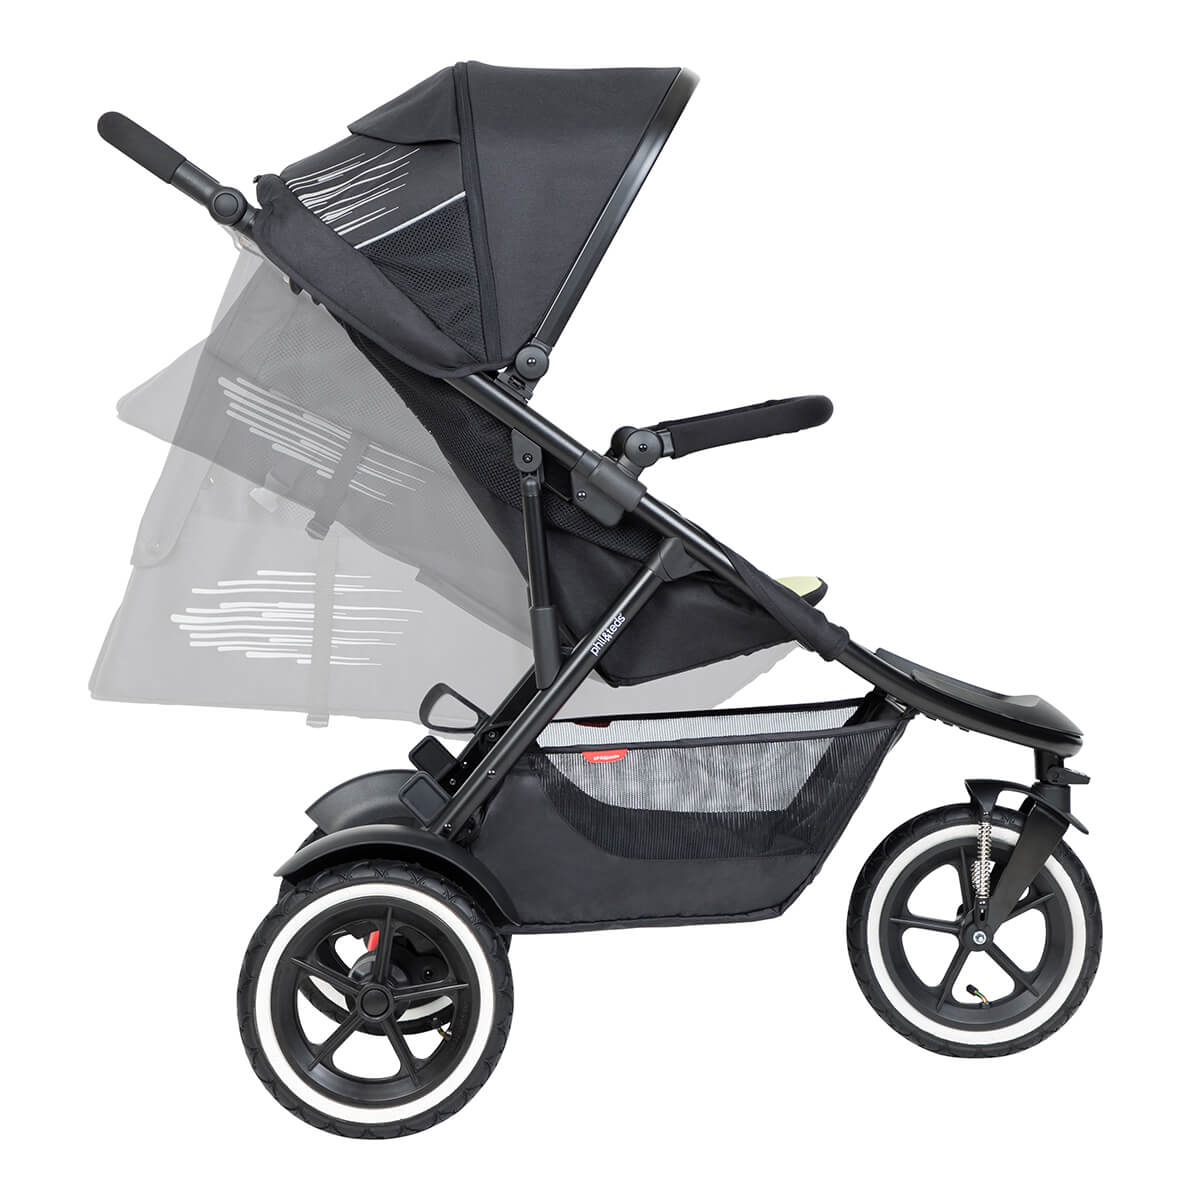 https://cdn.accentuate.io/4384002474081/19793939267754/philteds-sport-buggy-can-recline-in-multiple-angles-including-full-recline-for-newborn-baby-v1626147561023.jpg?1200x1200